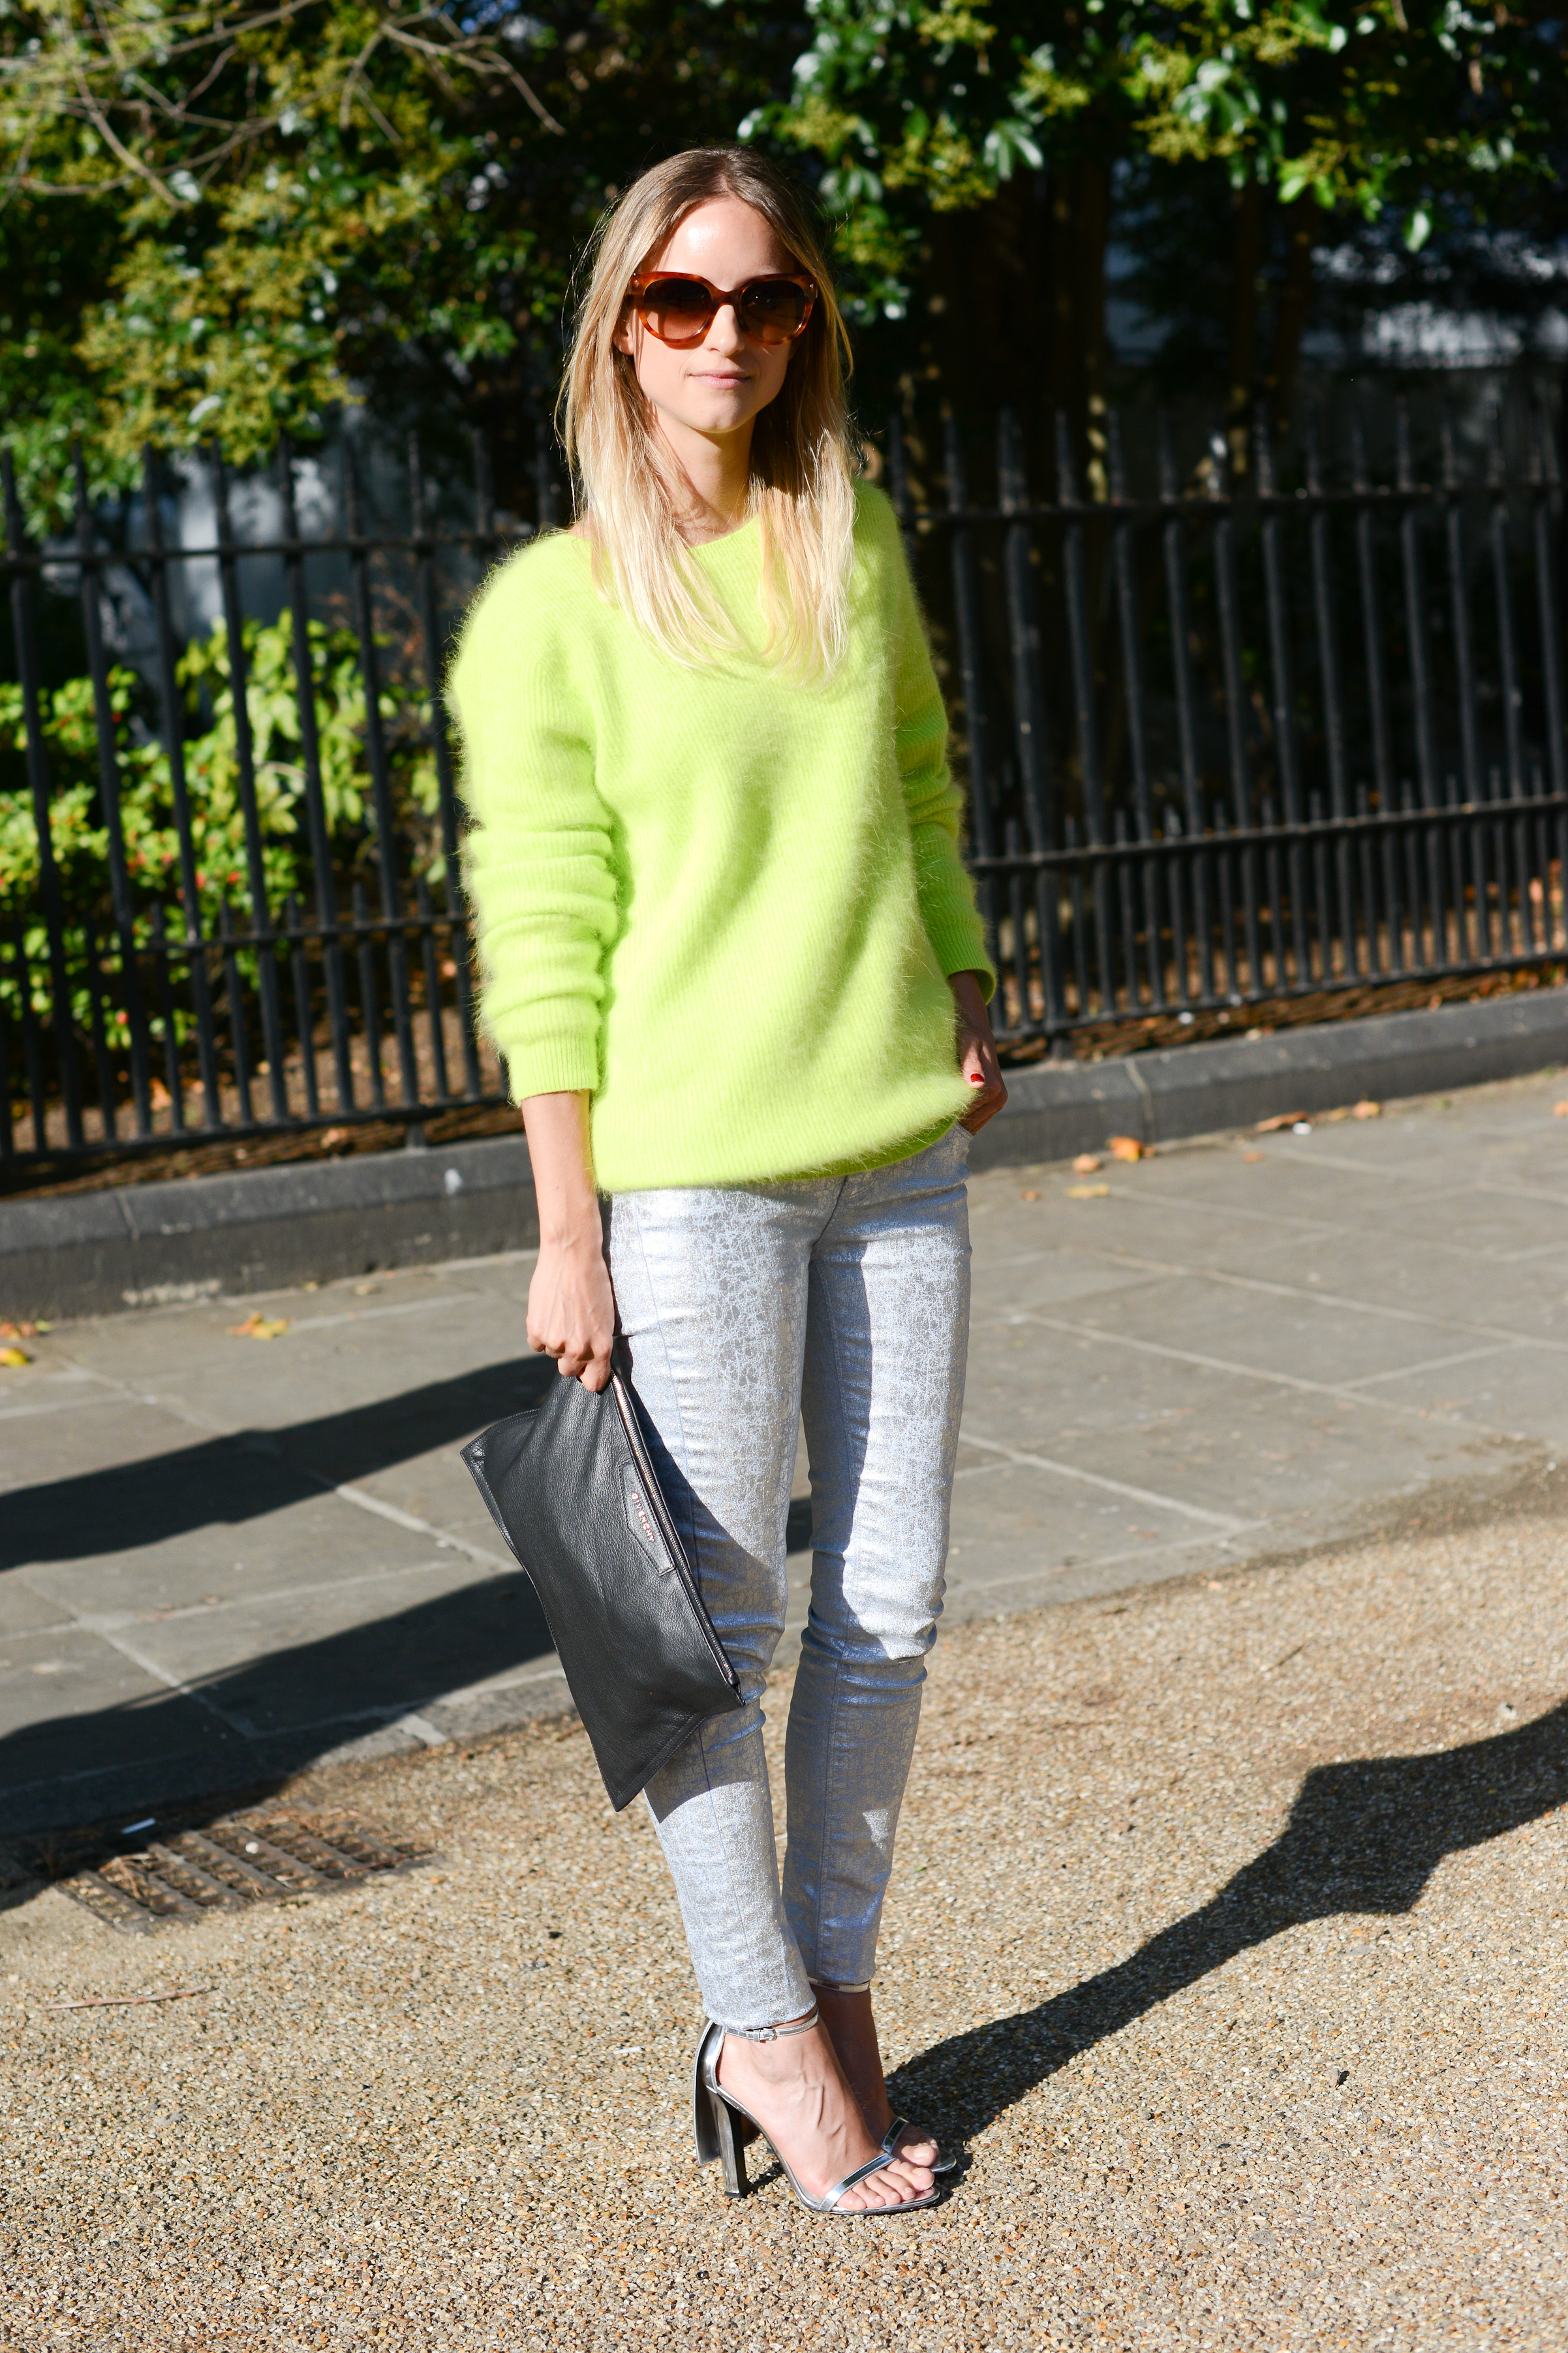 Make your sweater pop in a standout neon hue.